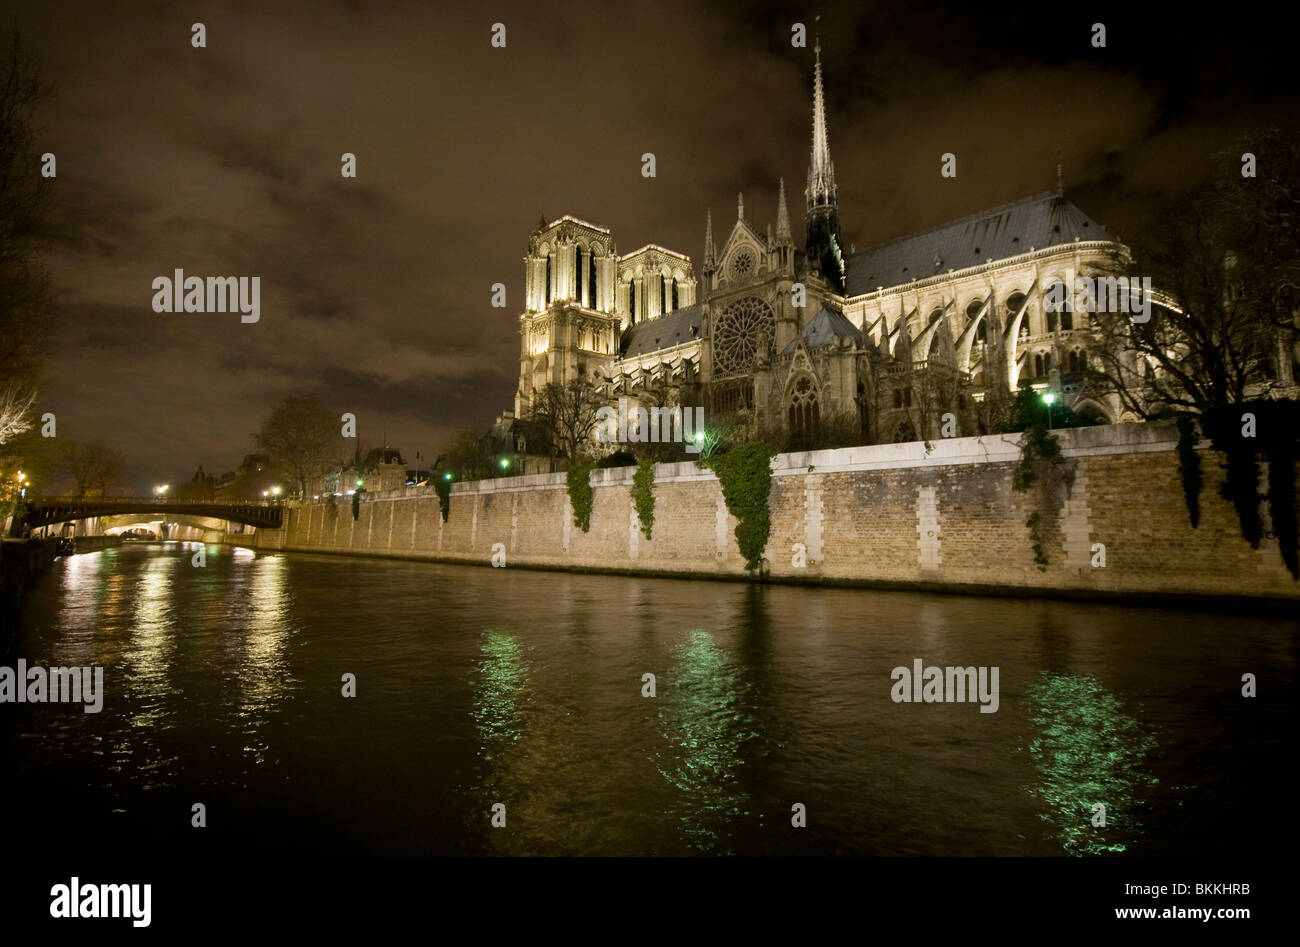 Notre Dame Cathedral next to the river Seine at night in Paris France - Stock Image